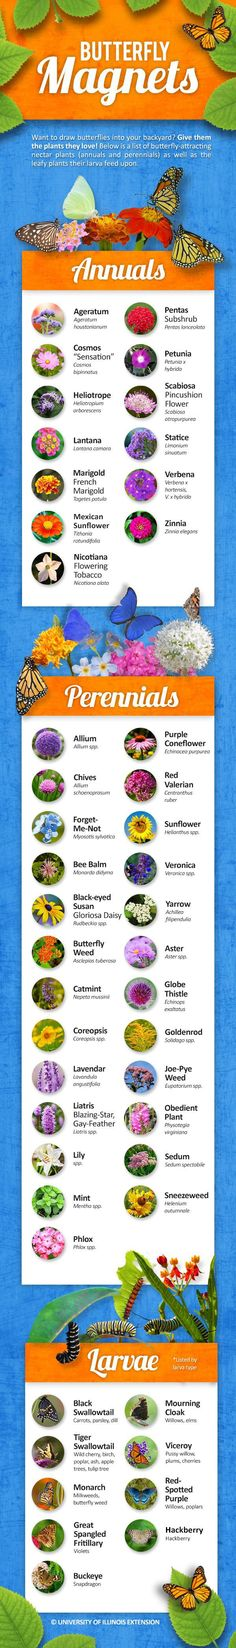 UPDATED Infographic: Want more butterflies in your yard? Plant the nectar plants they love! Here\'s a great list of butterfly-attracting annual and perennial plants — including those needed for butterfly larvae. #garden #gardening